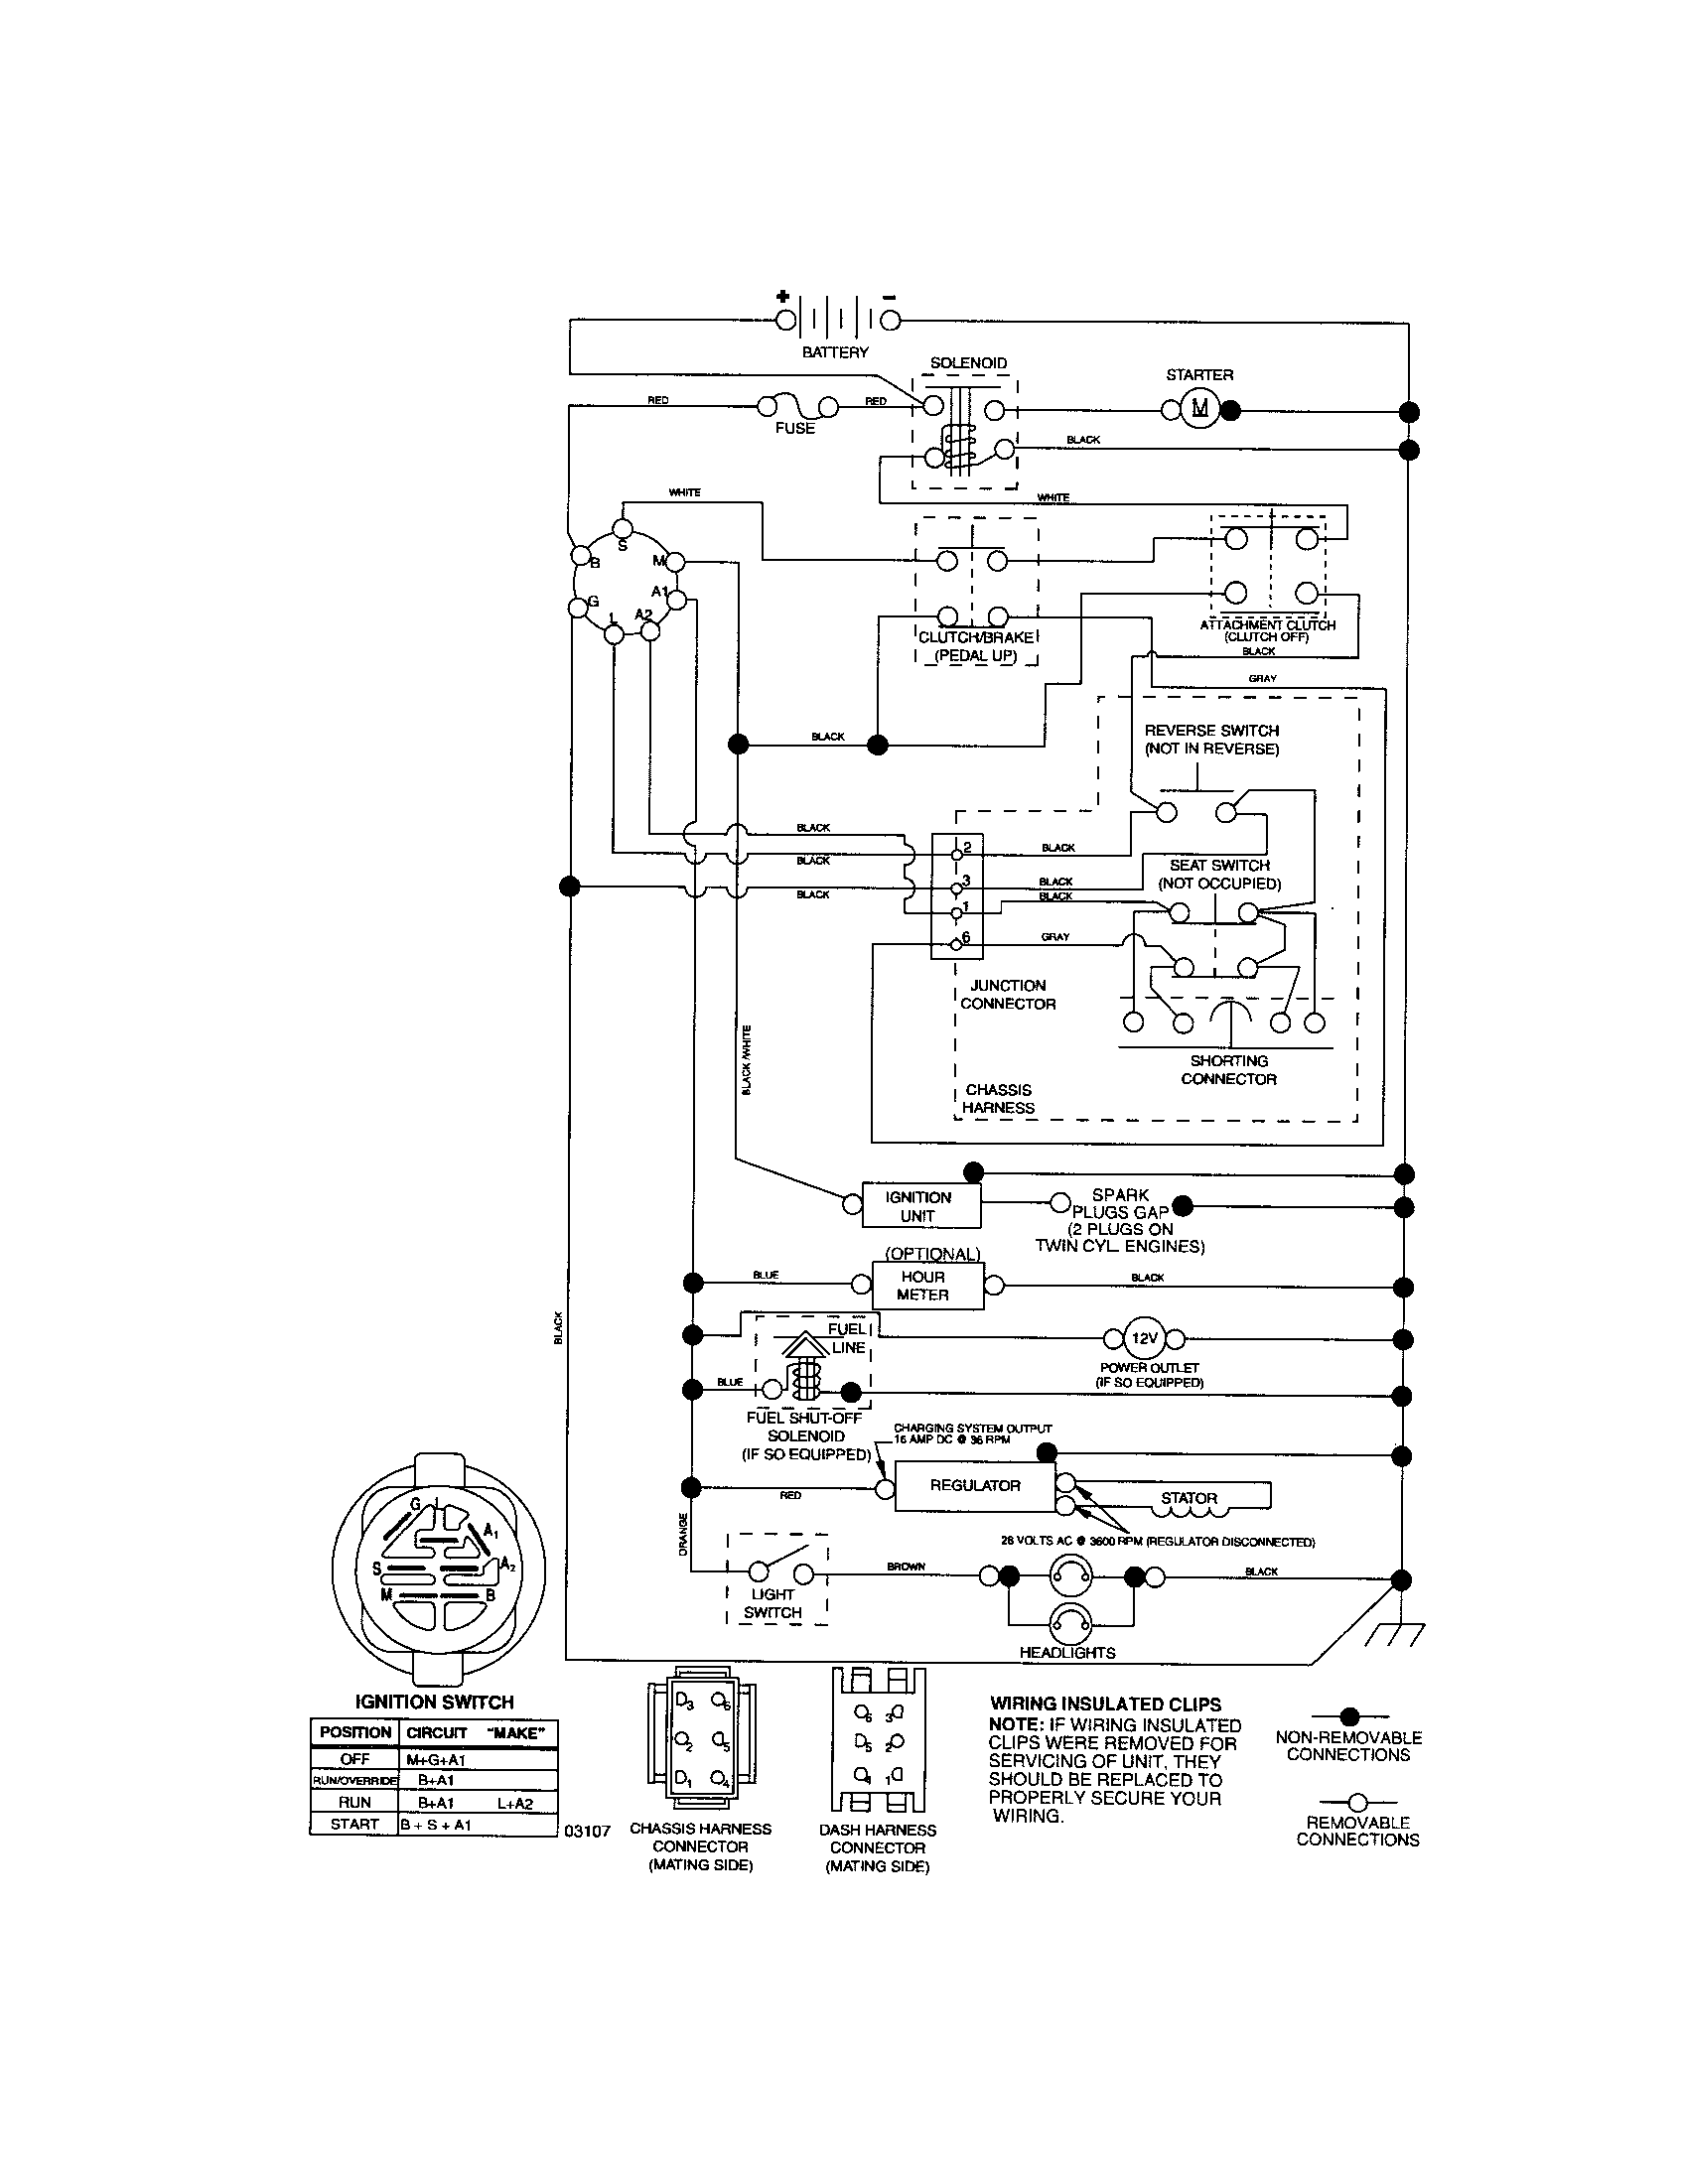 small resolution of mtd wiring diagram manual trusted wiring diagram rh 3 16 5 gartenmoebel rupp de mtd riding mower wiring diagram schematic mtd riding lawn mower wiring